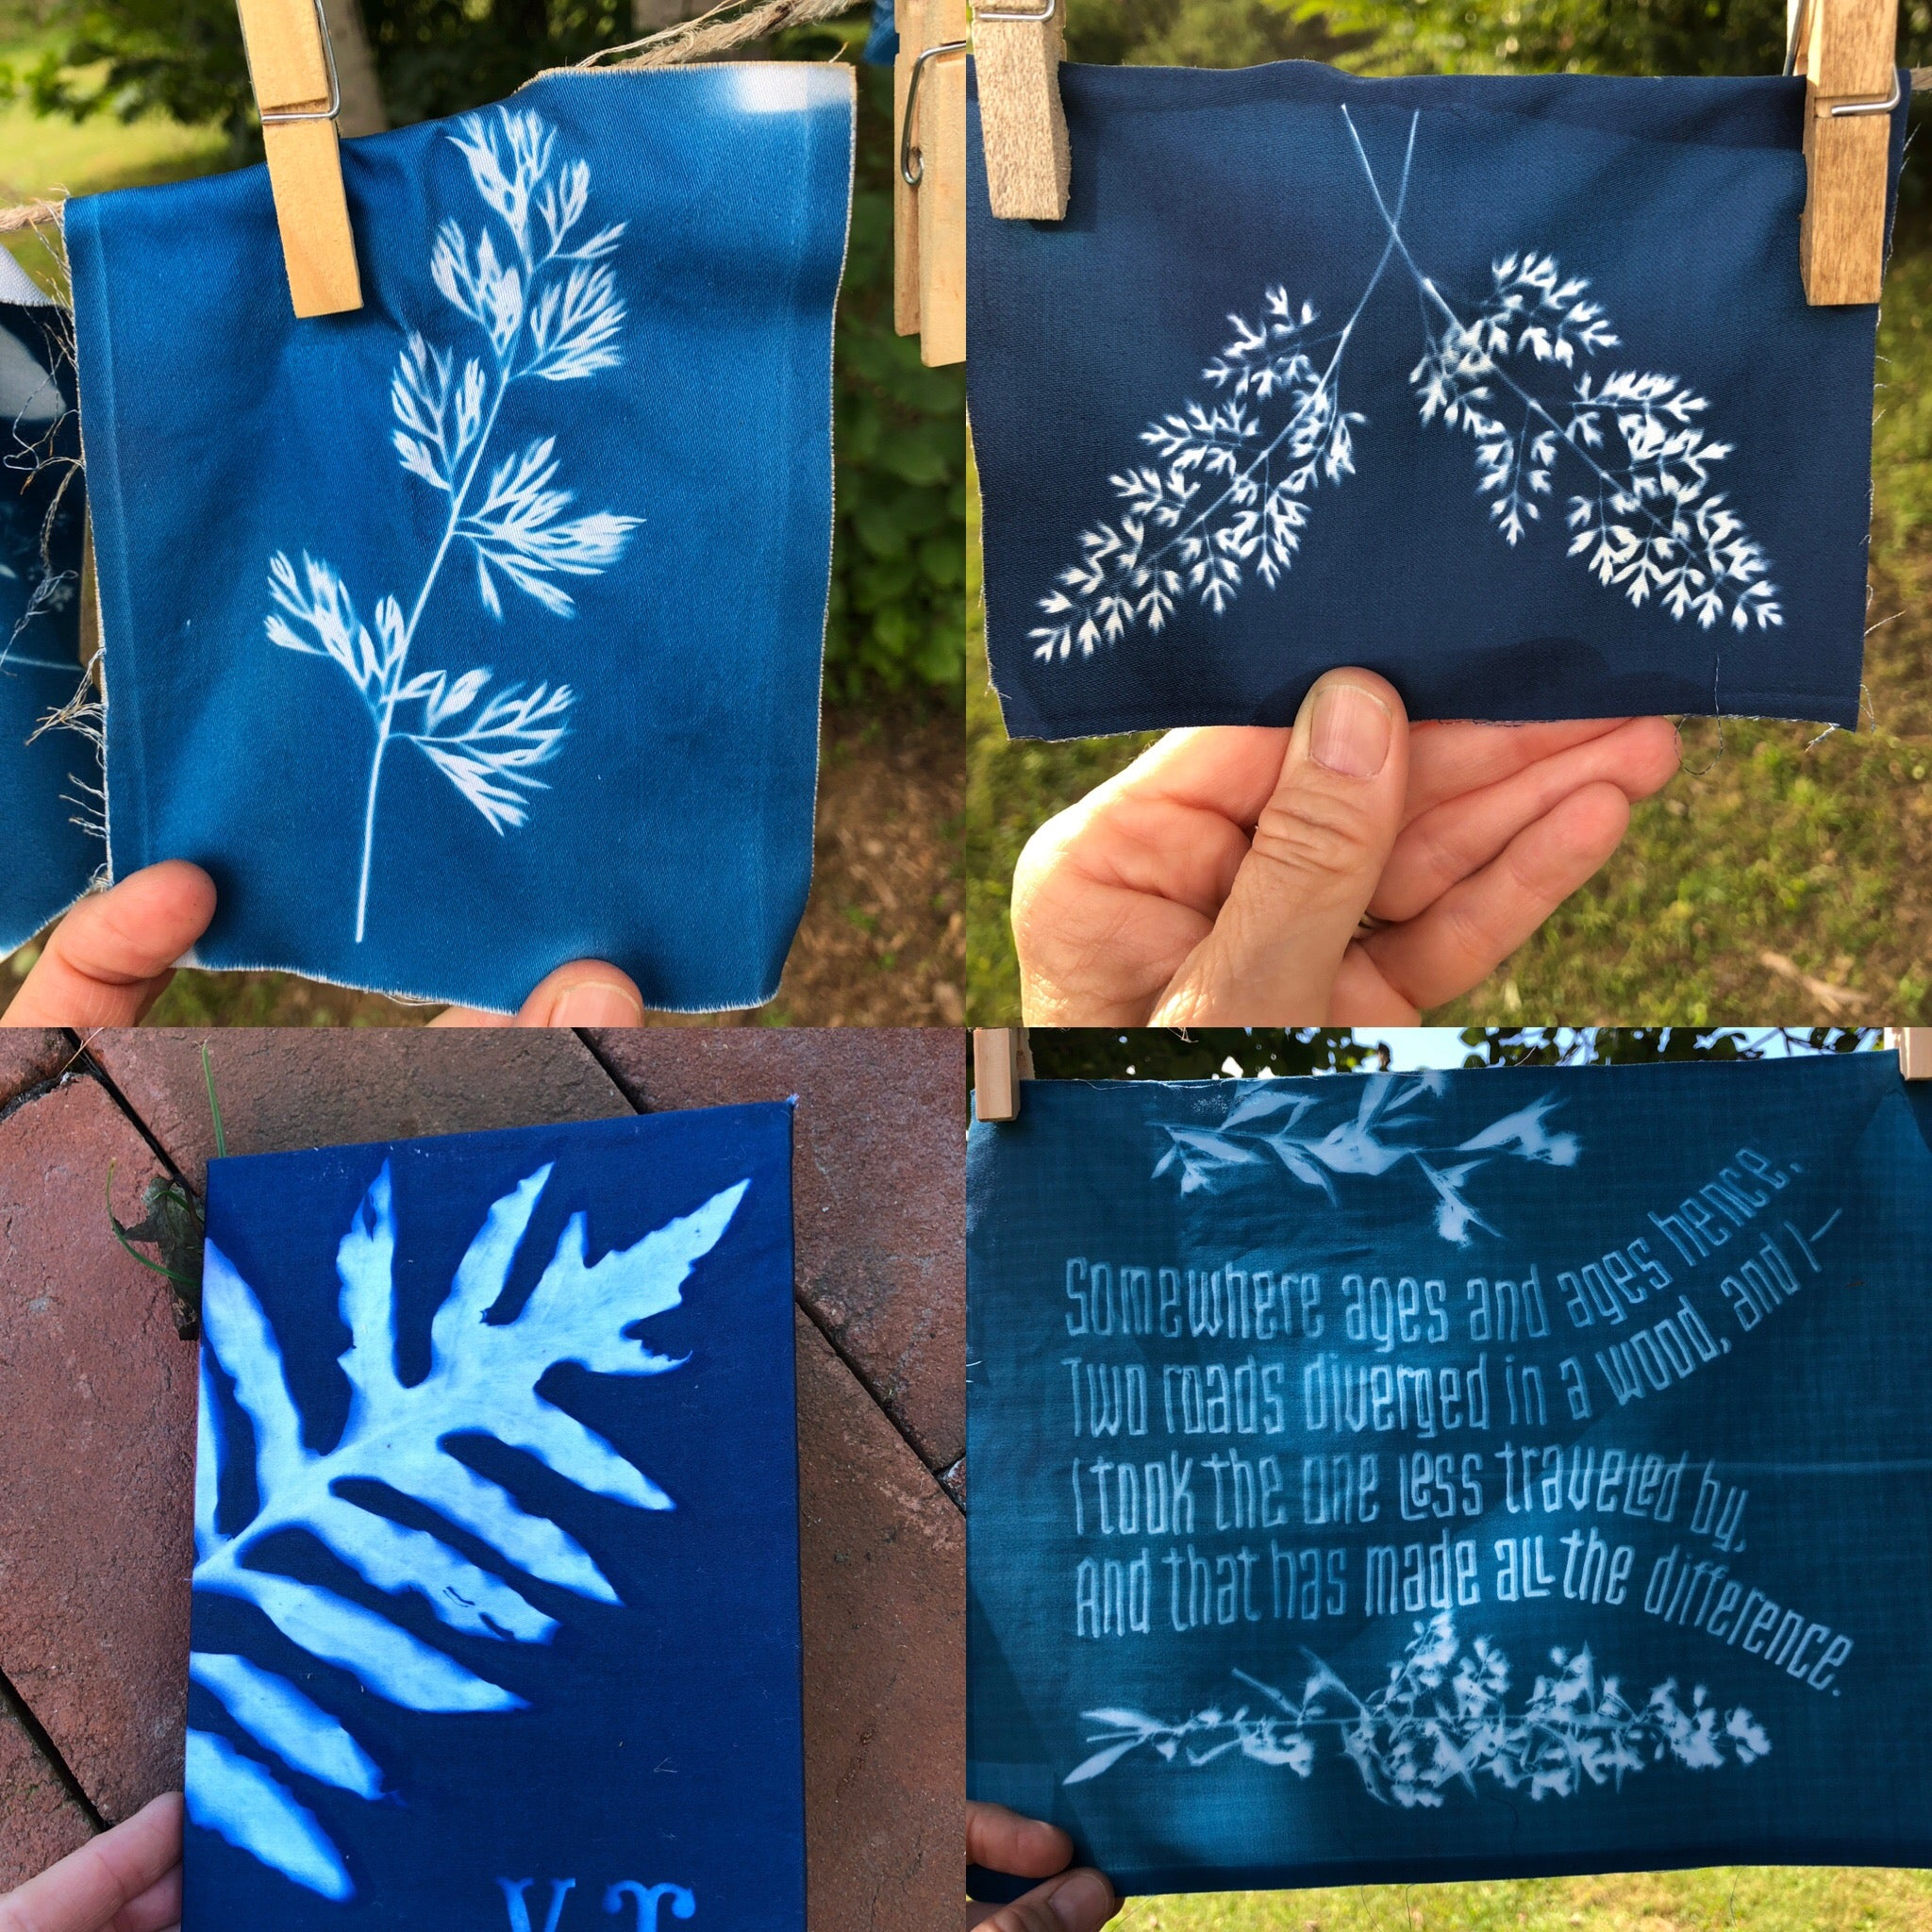 Into the Blue: Explorations with Cyanotype with Molly Meng / Saturday, March 9th / 10-4pm